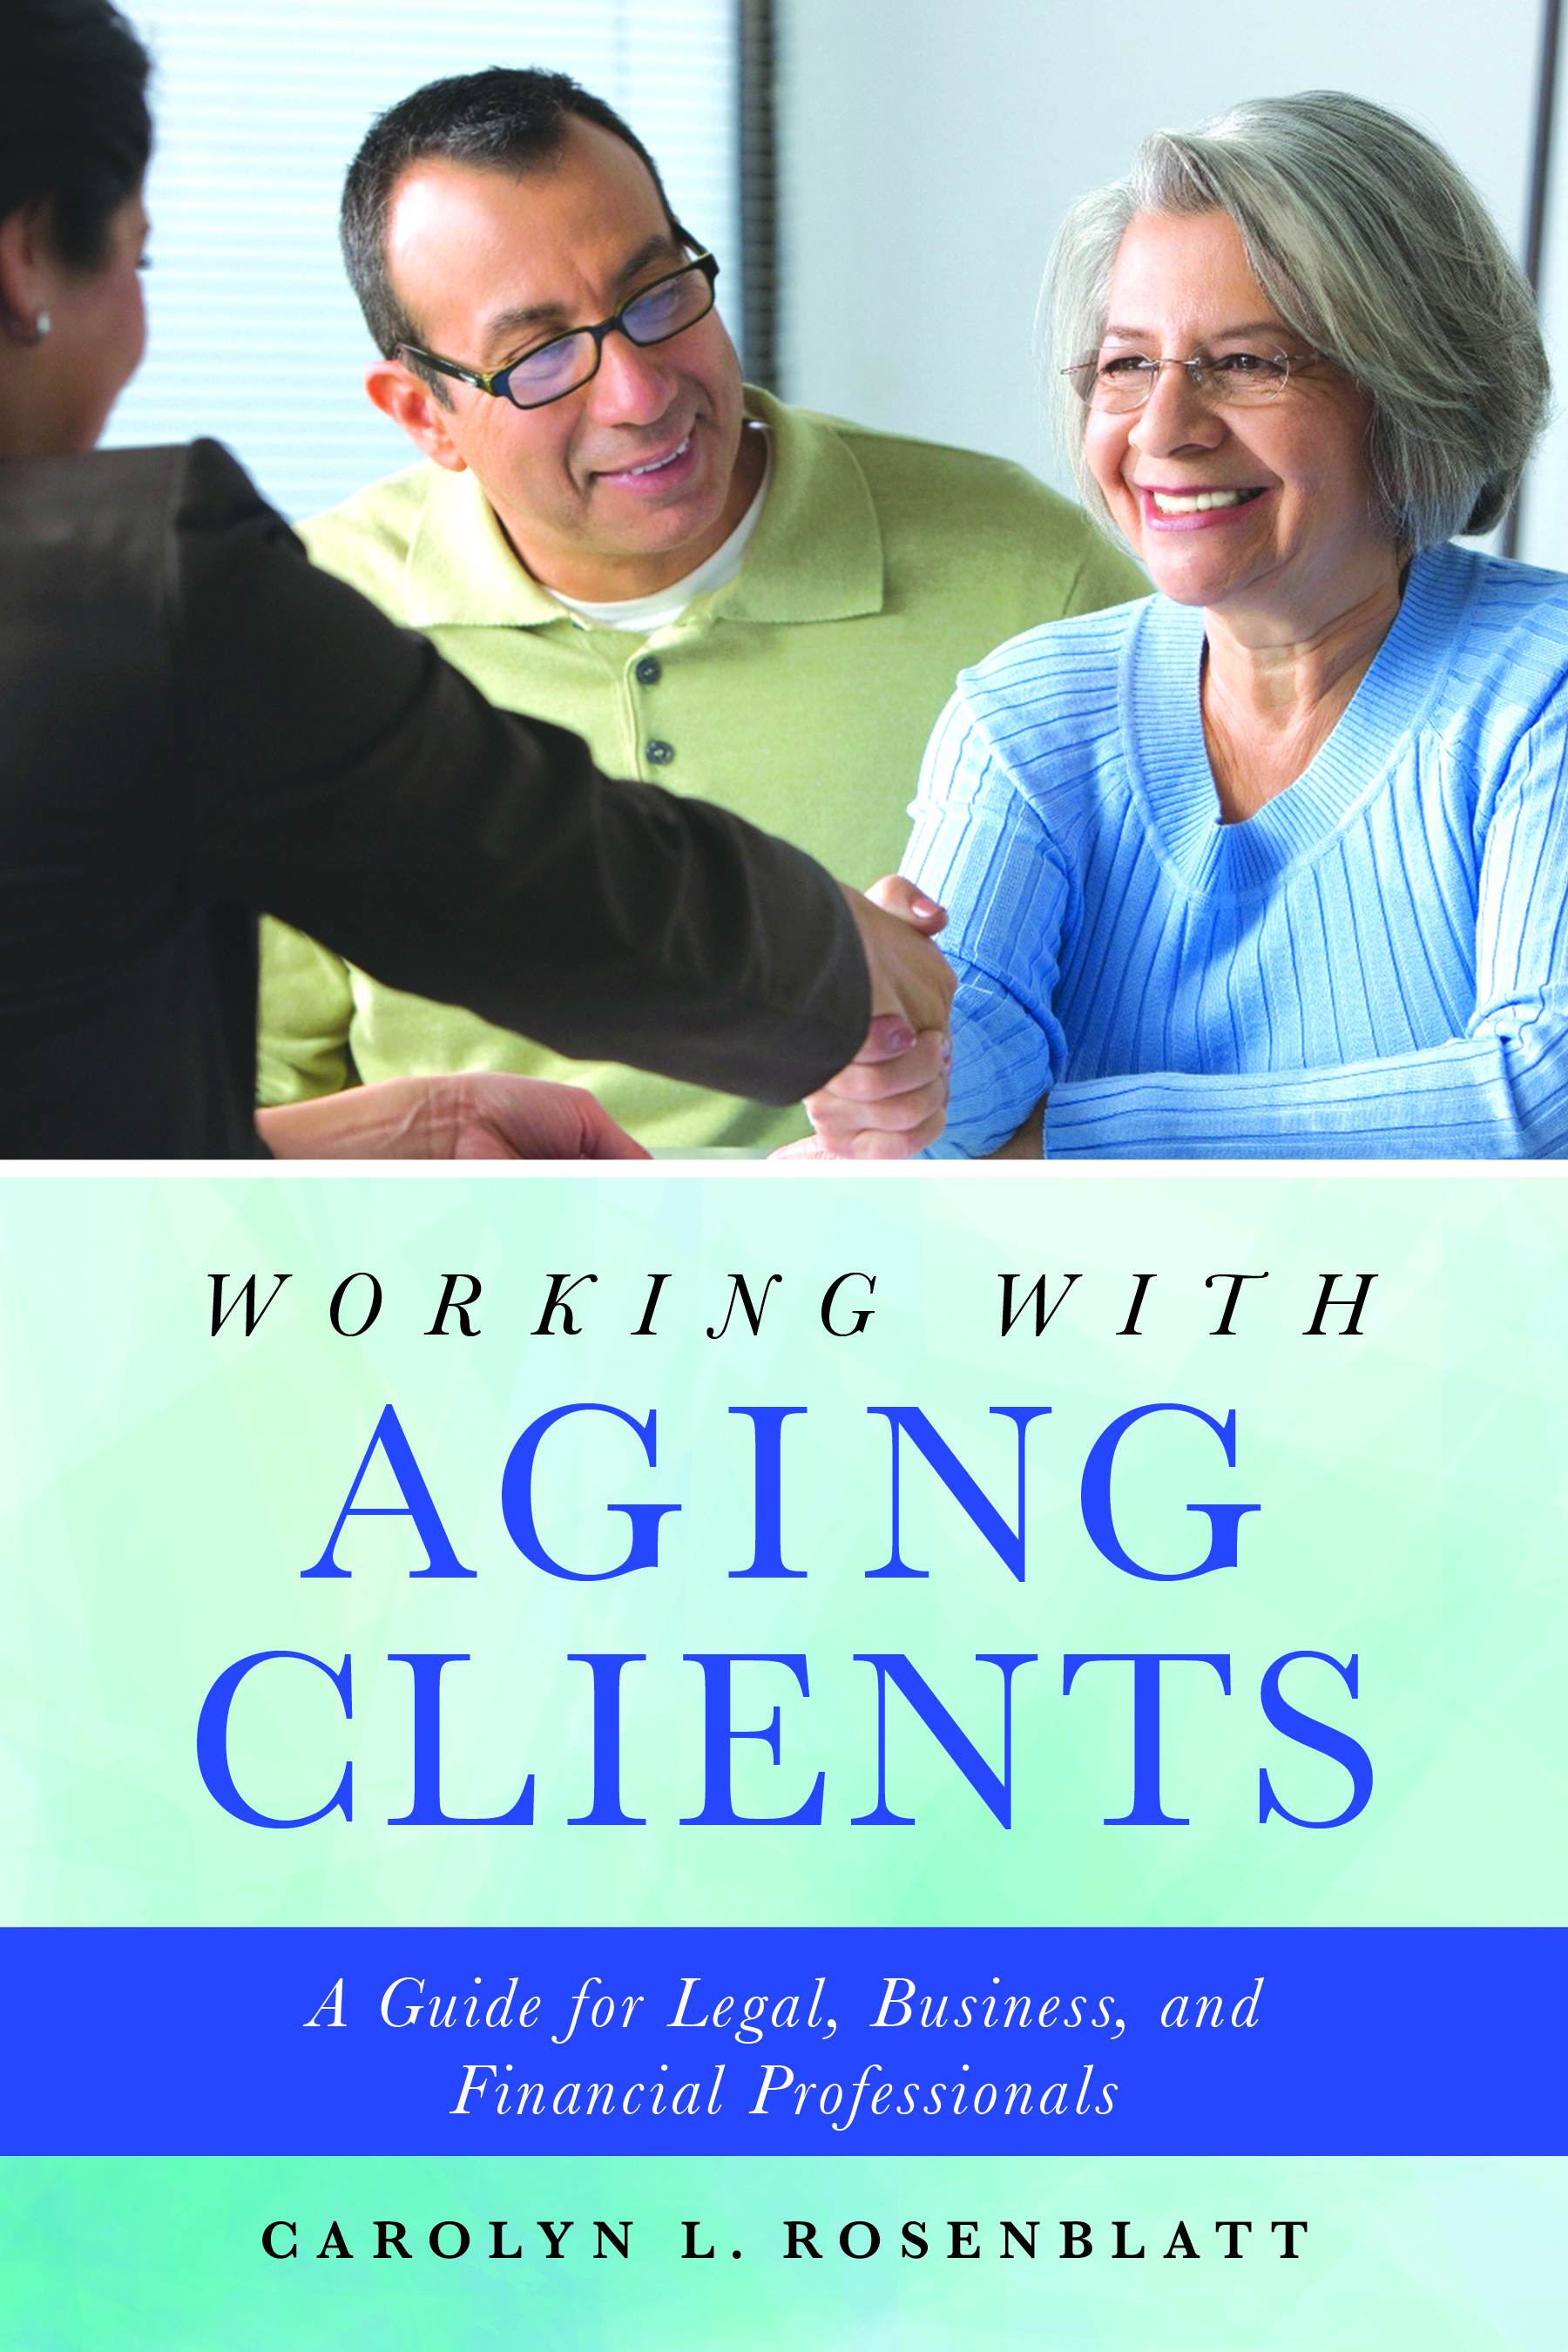 Working with Aging Clients: A Guide for Legal, Business, and Financial Professionals